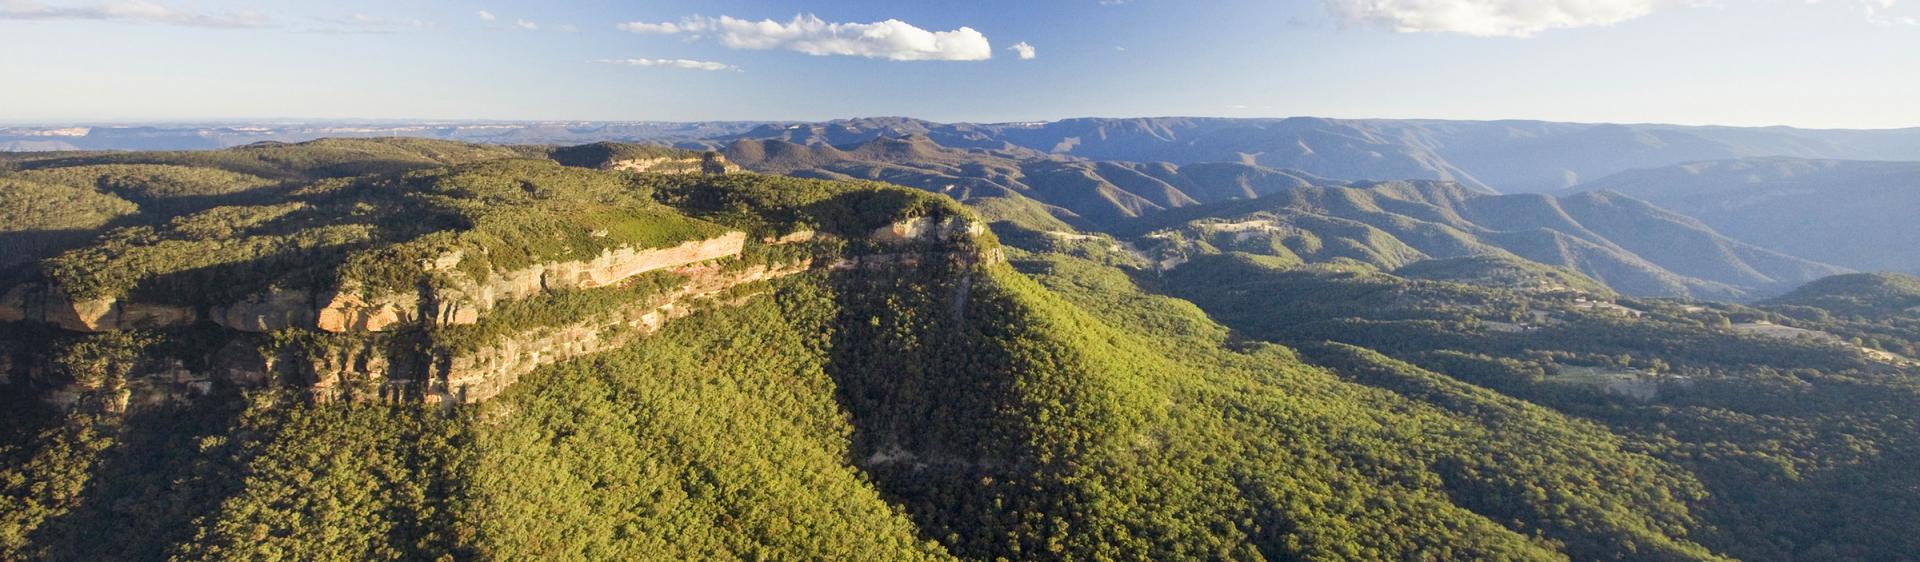 藍山(Blue Mountains)窄頸徑(Narrow Neck)